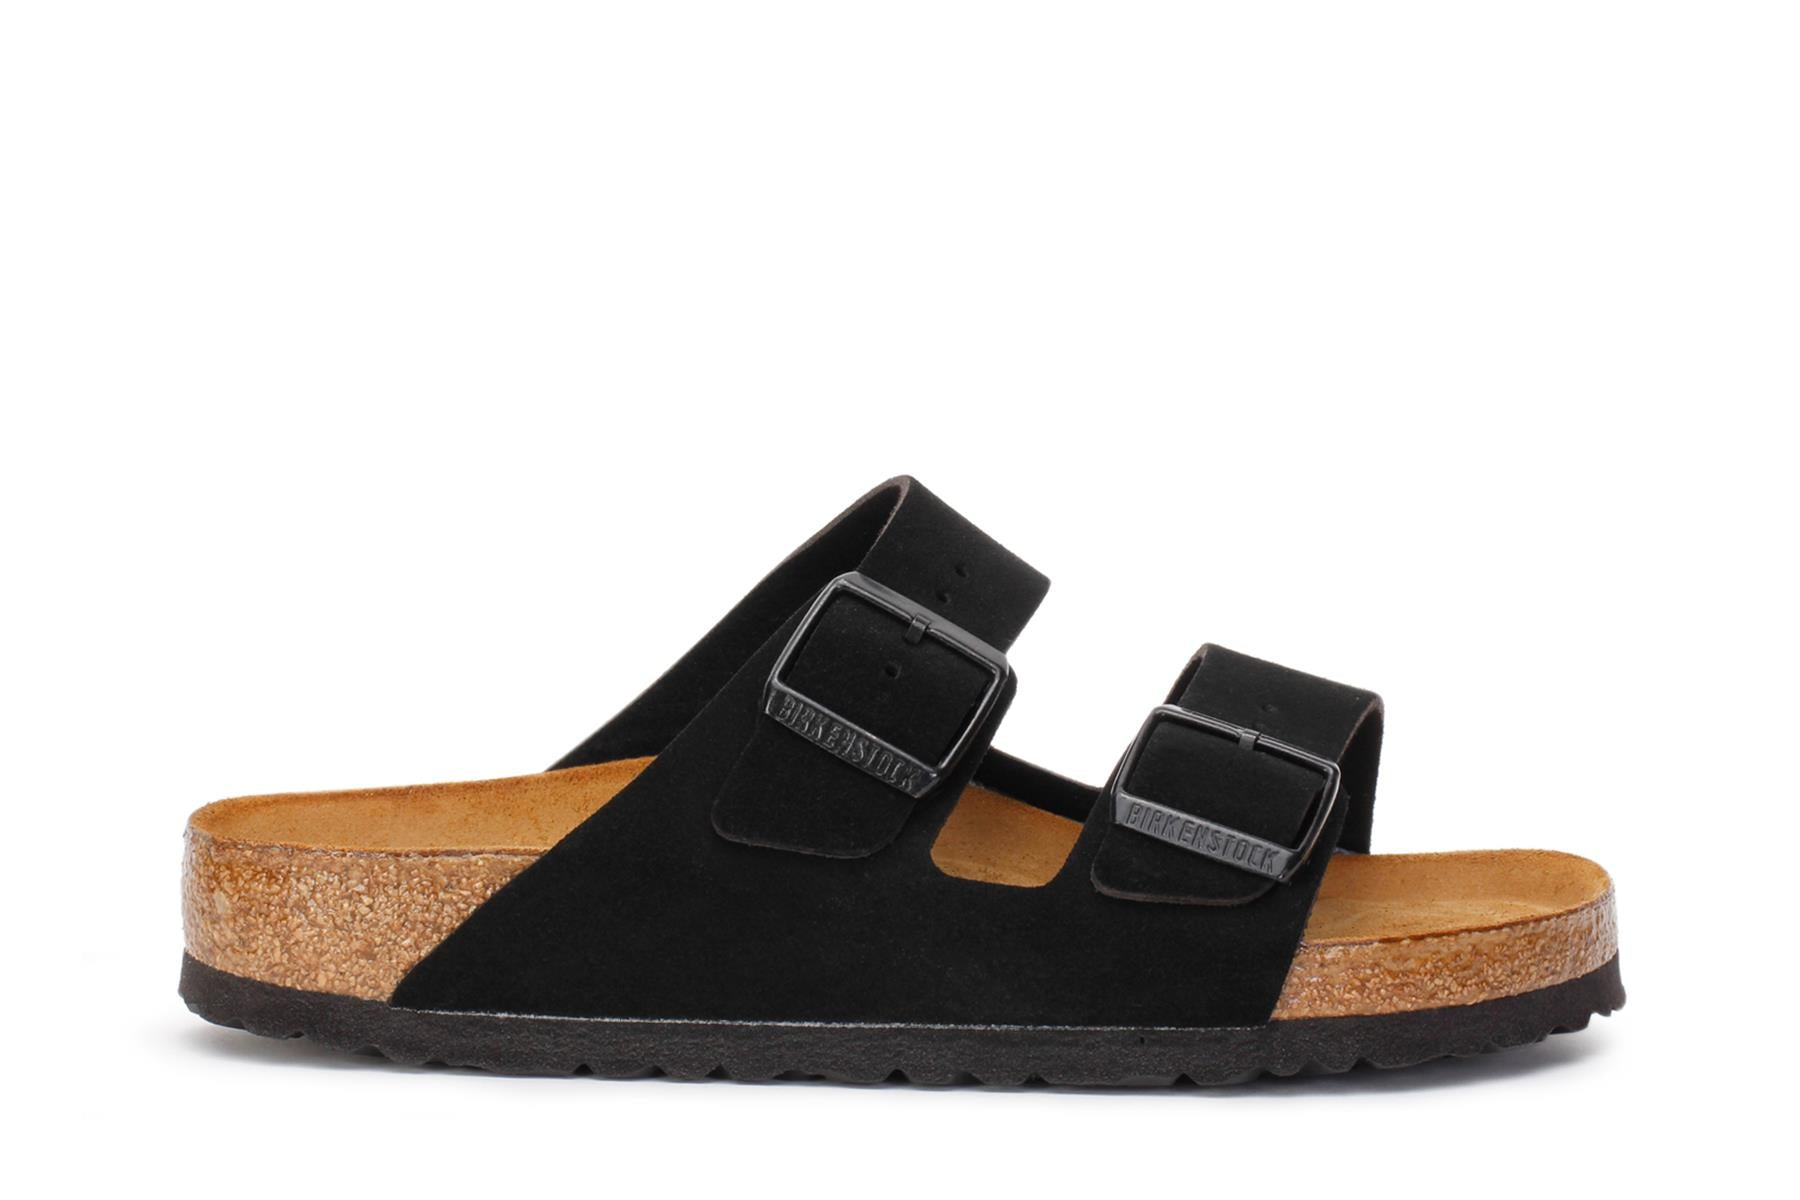 birkenstock-womens-slide-sandals-arizona-bs-soft-footbed-black-951321-main